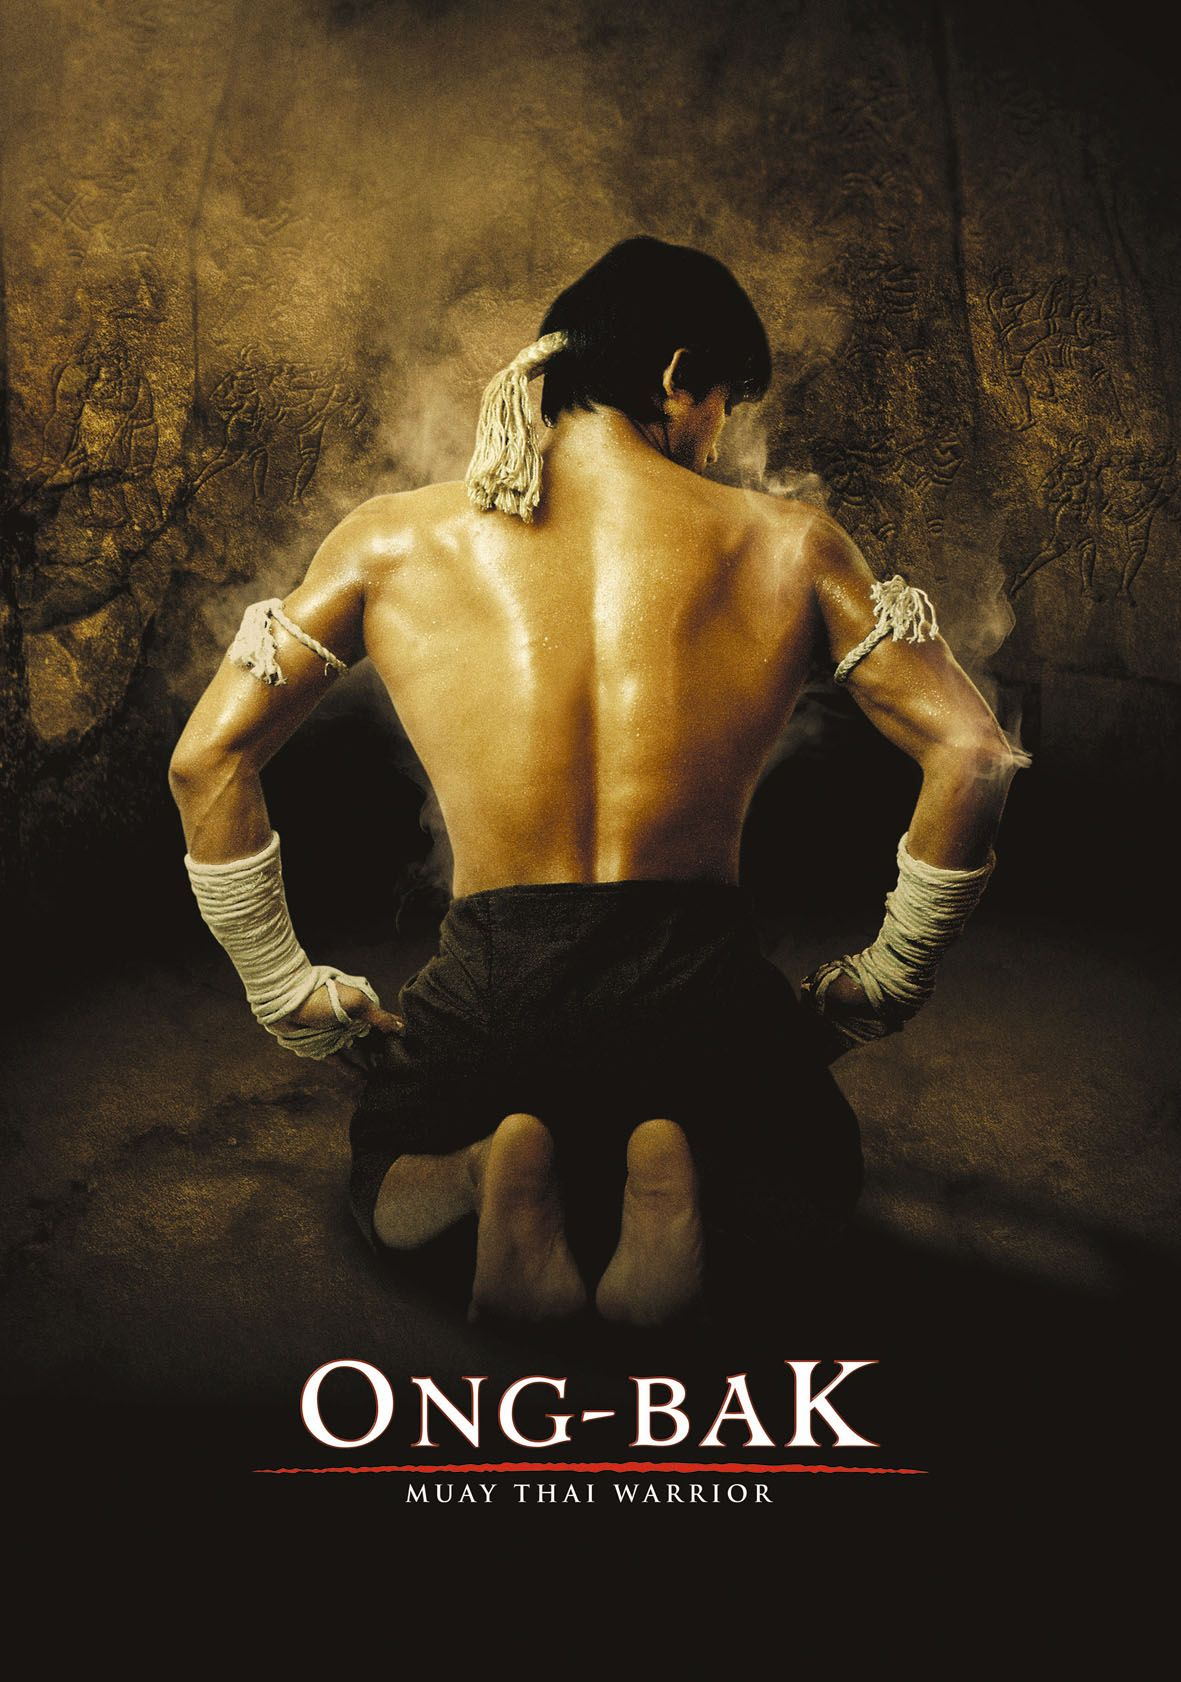 Jaa Cheap ong-bak - tony jaa should just stick to stunts and choreo, but